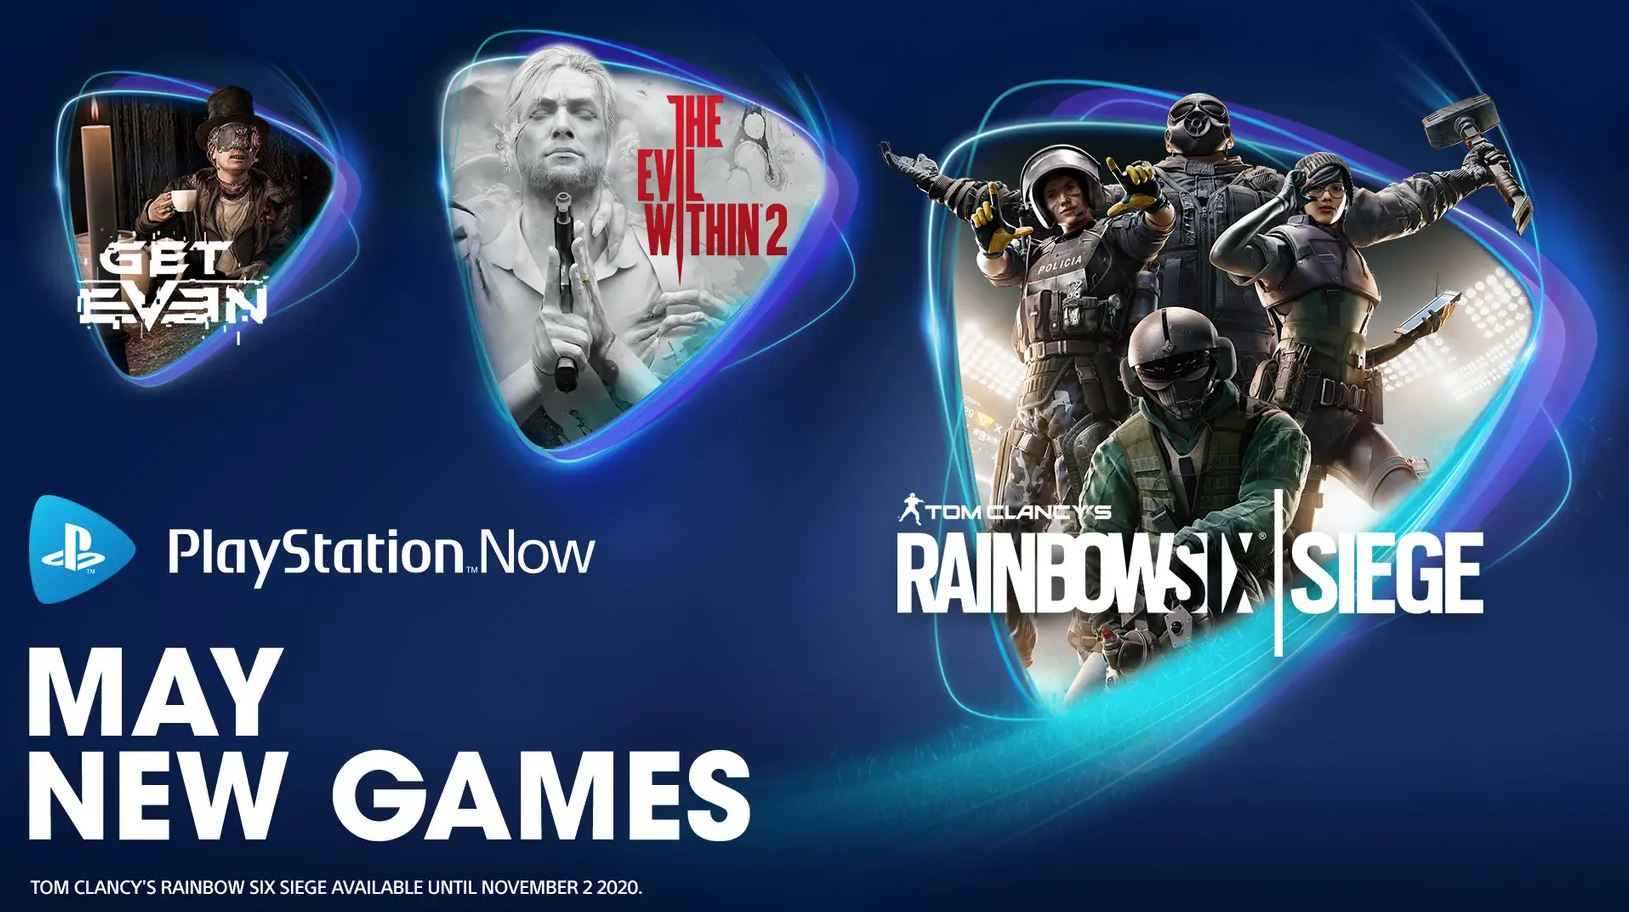 PS Now adds three new games in May